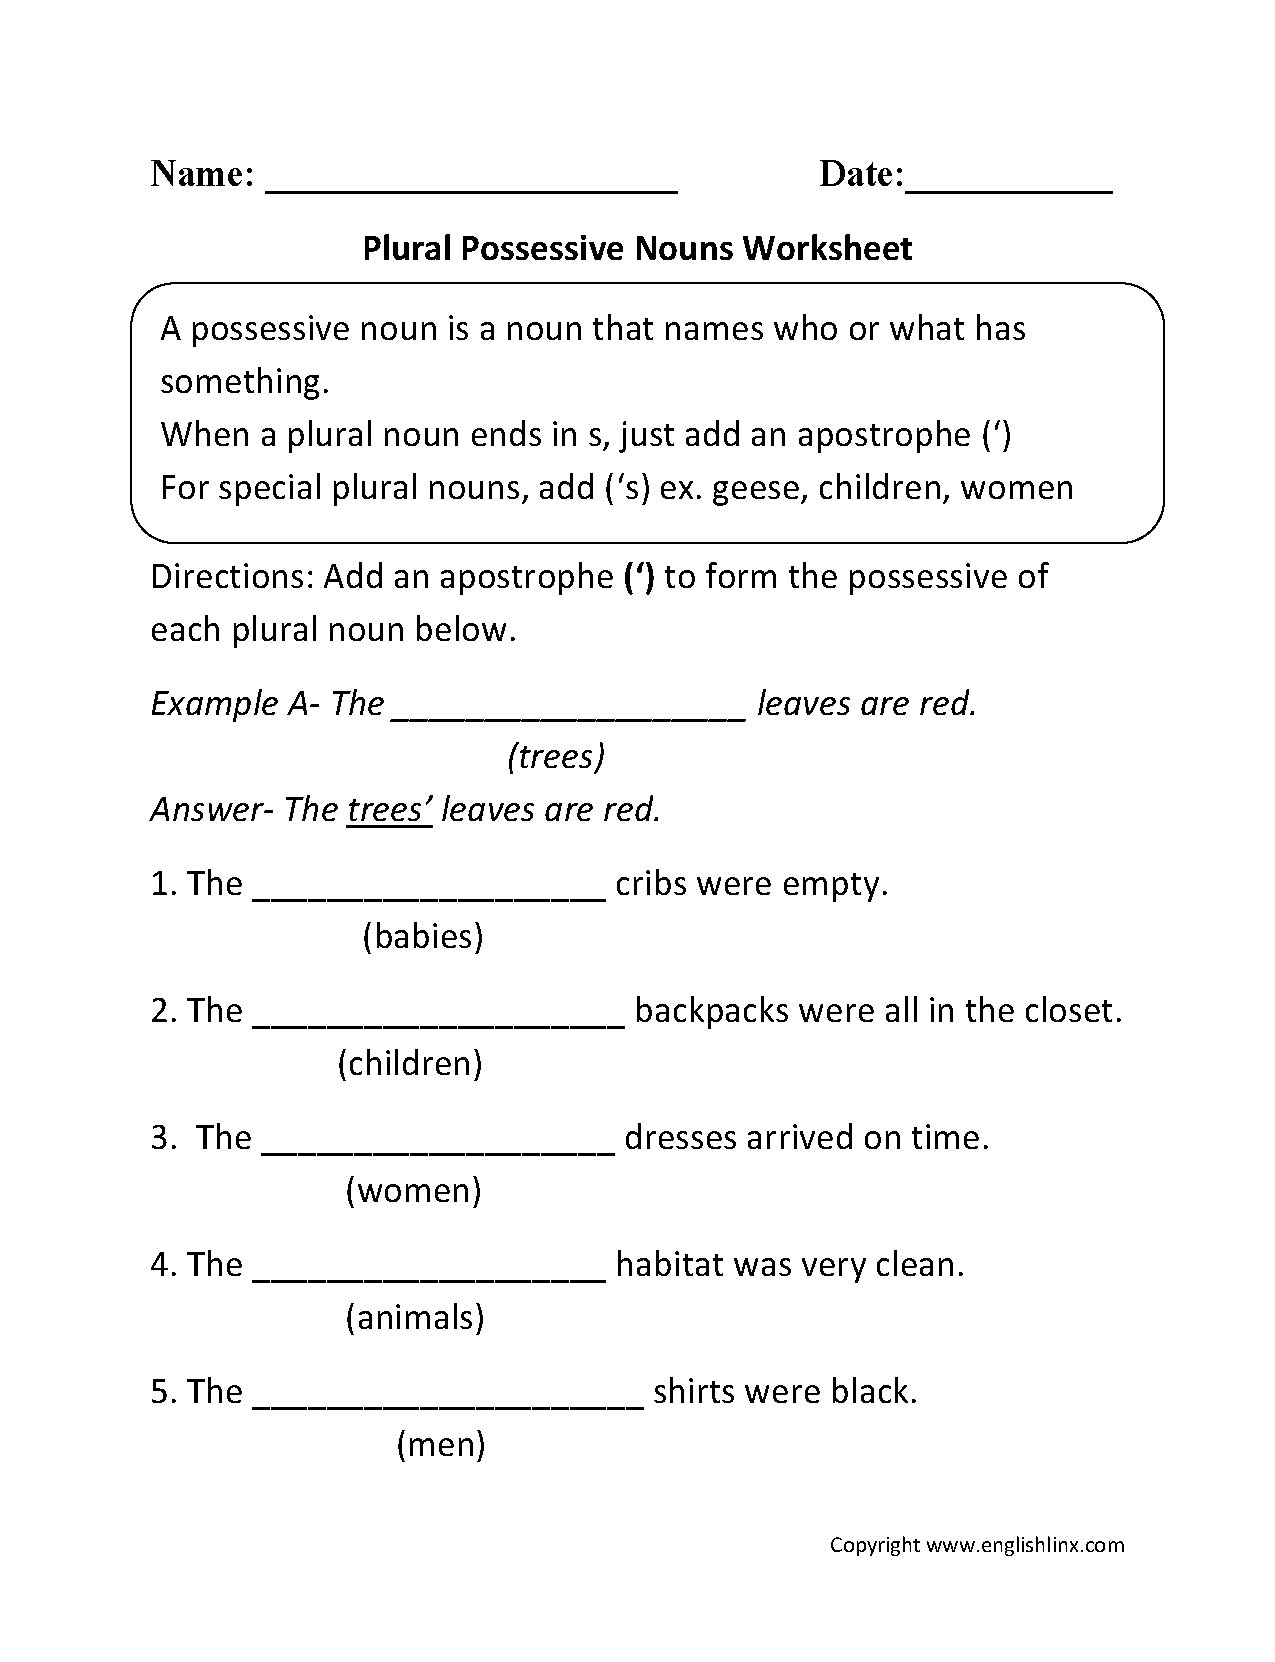 Aldiablosus  Marvellous Nouns Worksheets  Possessive Nouns Worksheets With Engaging Possessive Nouns Worksheets With Extraordinary Square Numbers And Square Roots Worksheet Also Third Grade Inference Worksheets In Addition Multiplication Grids Worksheets And Adjective Order Worksheets As Well As Decoding Skills Worksheets Additionally Bodmas Worksheets With Answers From Englishlinxcom With Aldiablosus  Engaging Nouns Worksheets  Possessive Nouns Worksheets With Extraordinary Possessive Nouns Worksheets And Marvellous Square Numbers And Square Roots Worksheet Also Third Grade Inference Worksheets In Addition Multiplication Grids Worksheets From Englishlinxcom